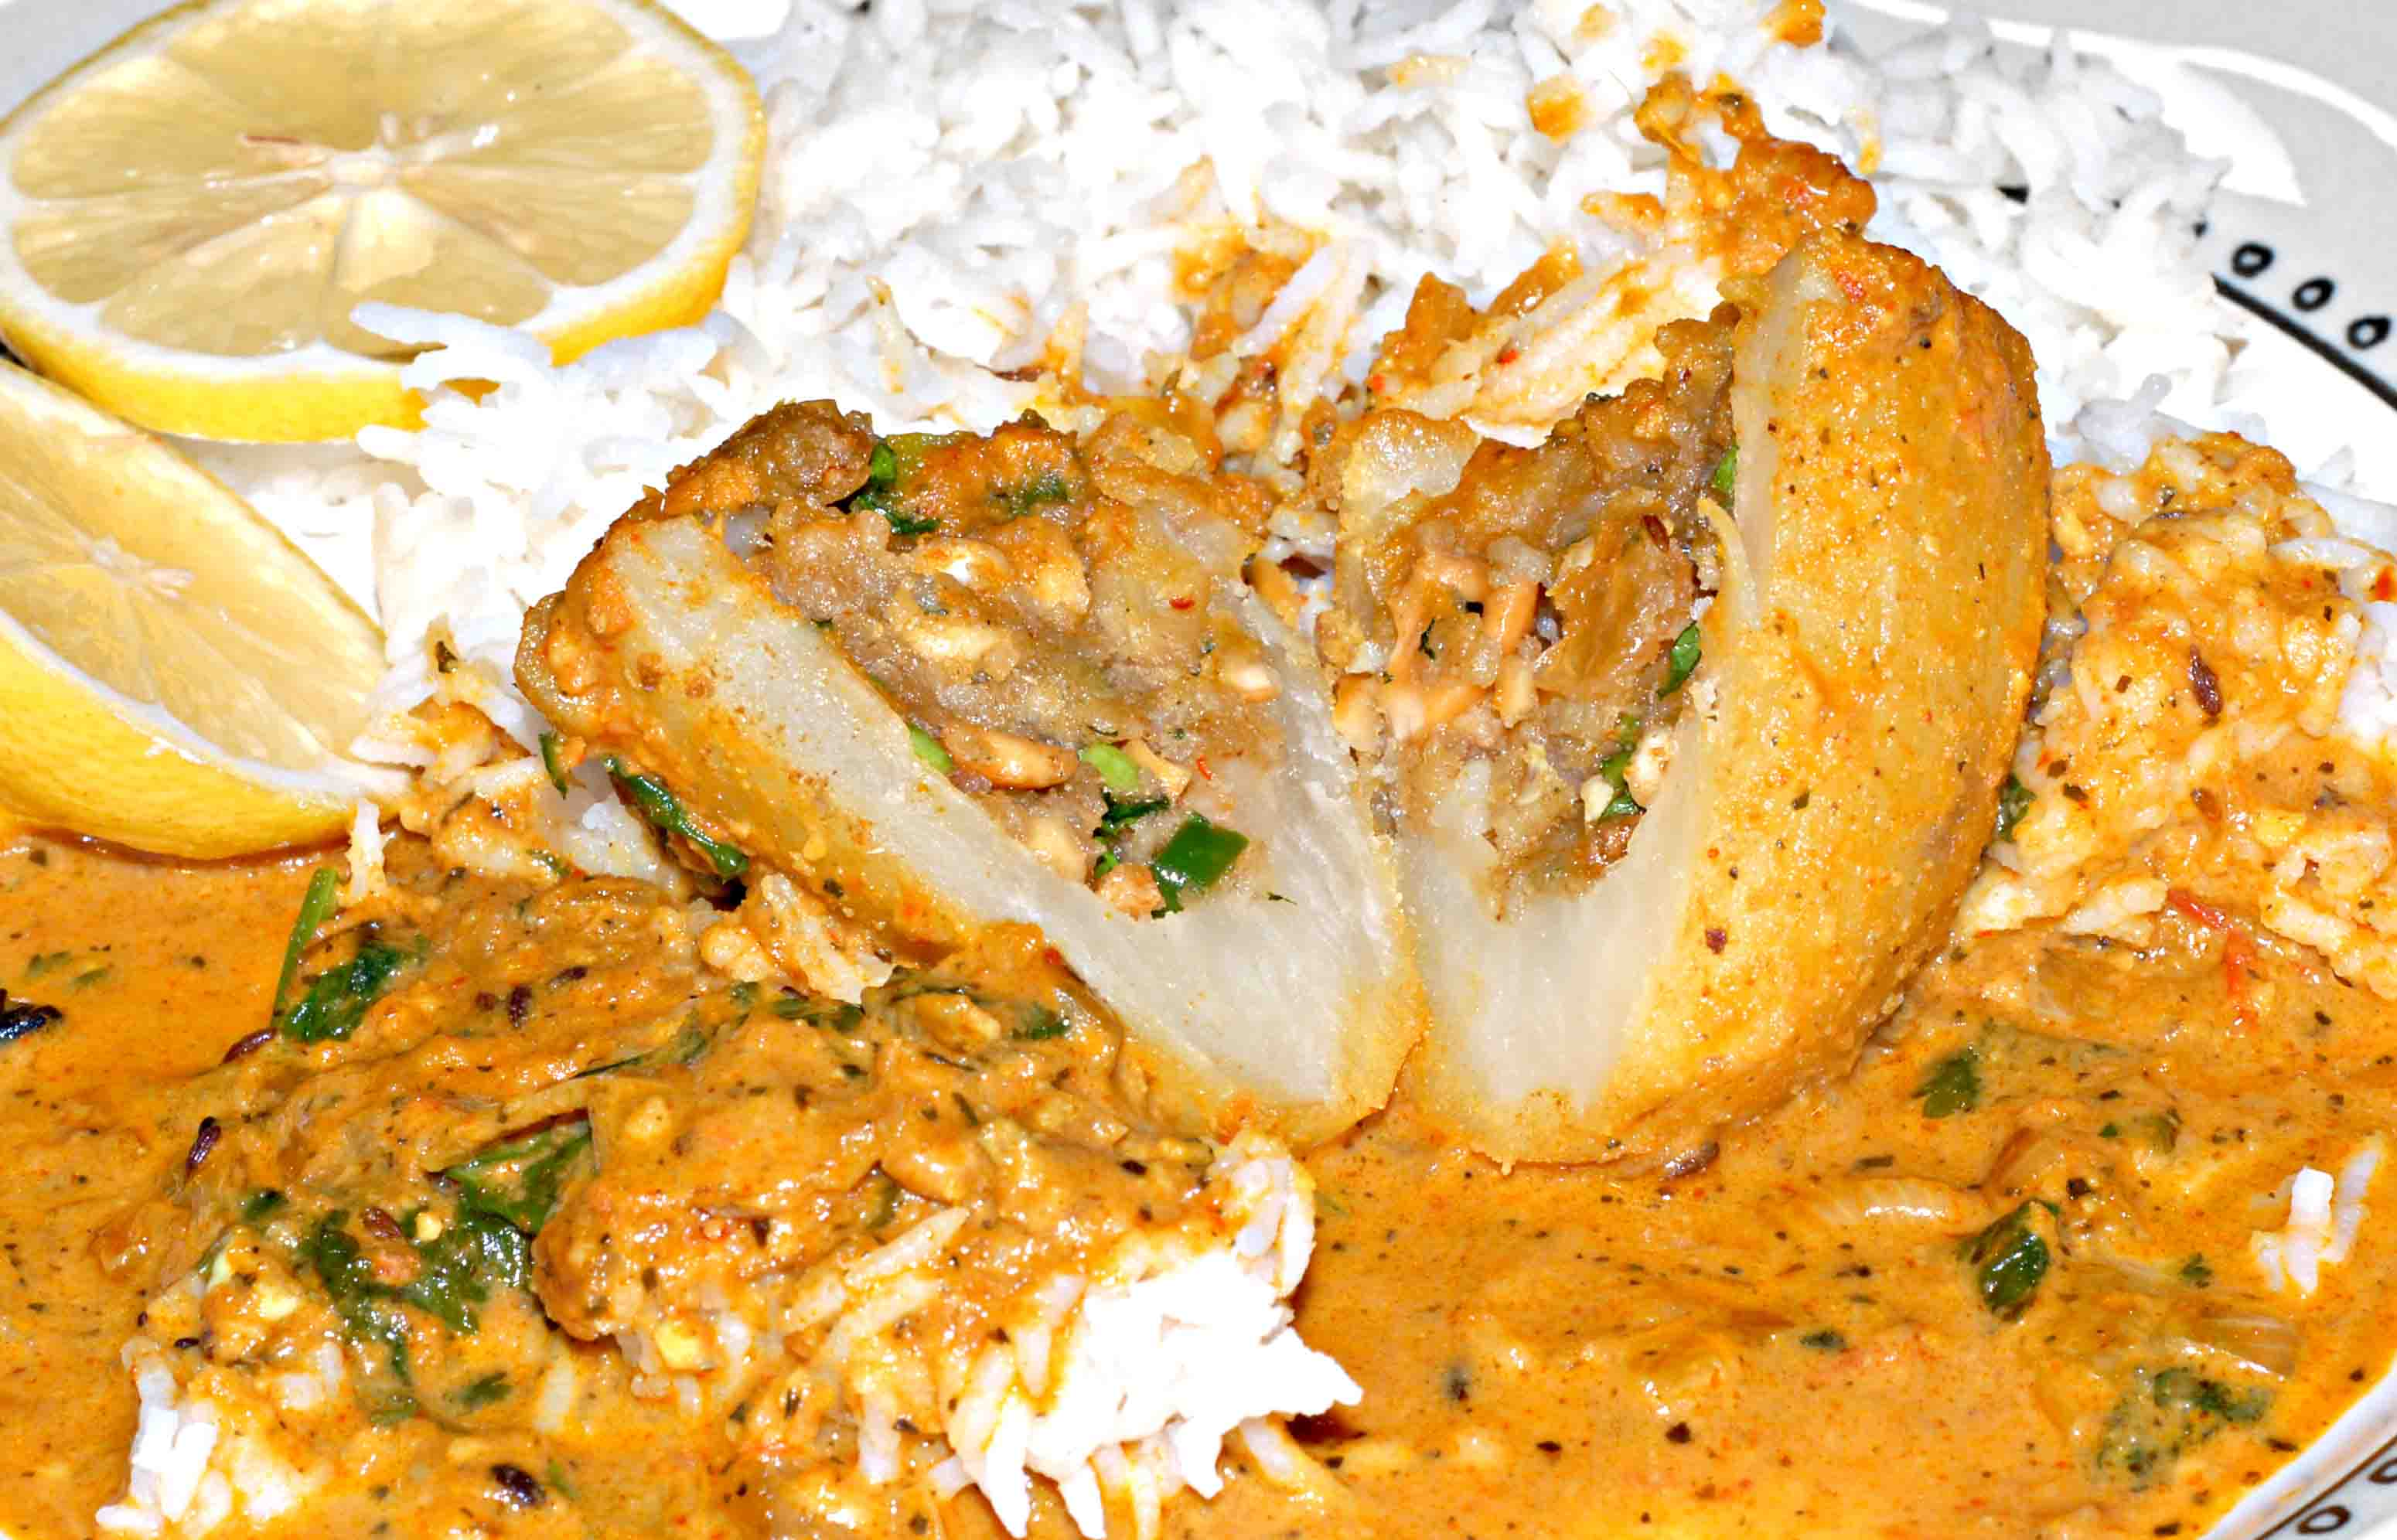 Barvan dum aloobarvan dum aloo dum vahrehvah barvan dum aloo is an exotic north indian dish it is a dish made of a mixture of dry fruits using the cashew nuts and raisins spices and fried trimmings forumfinder Choice Image